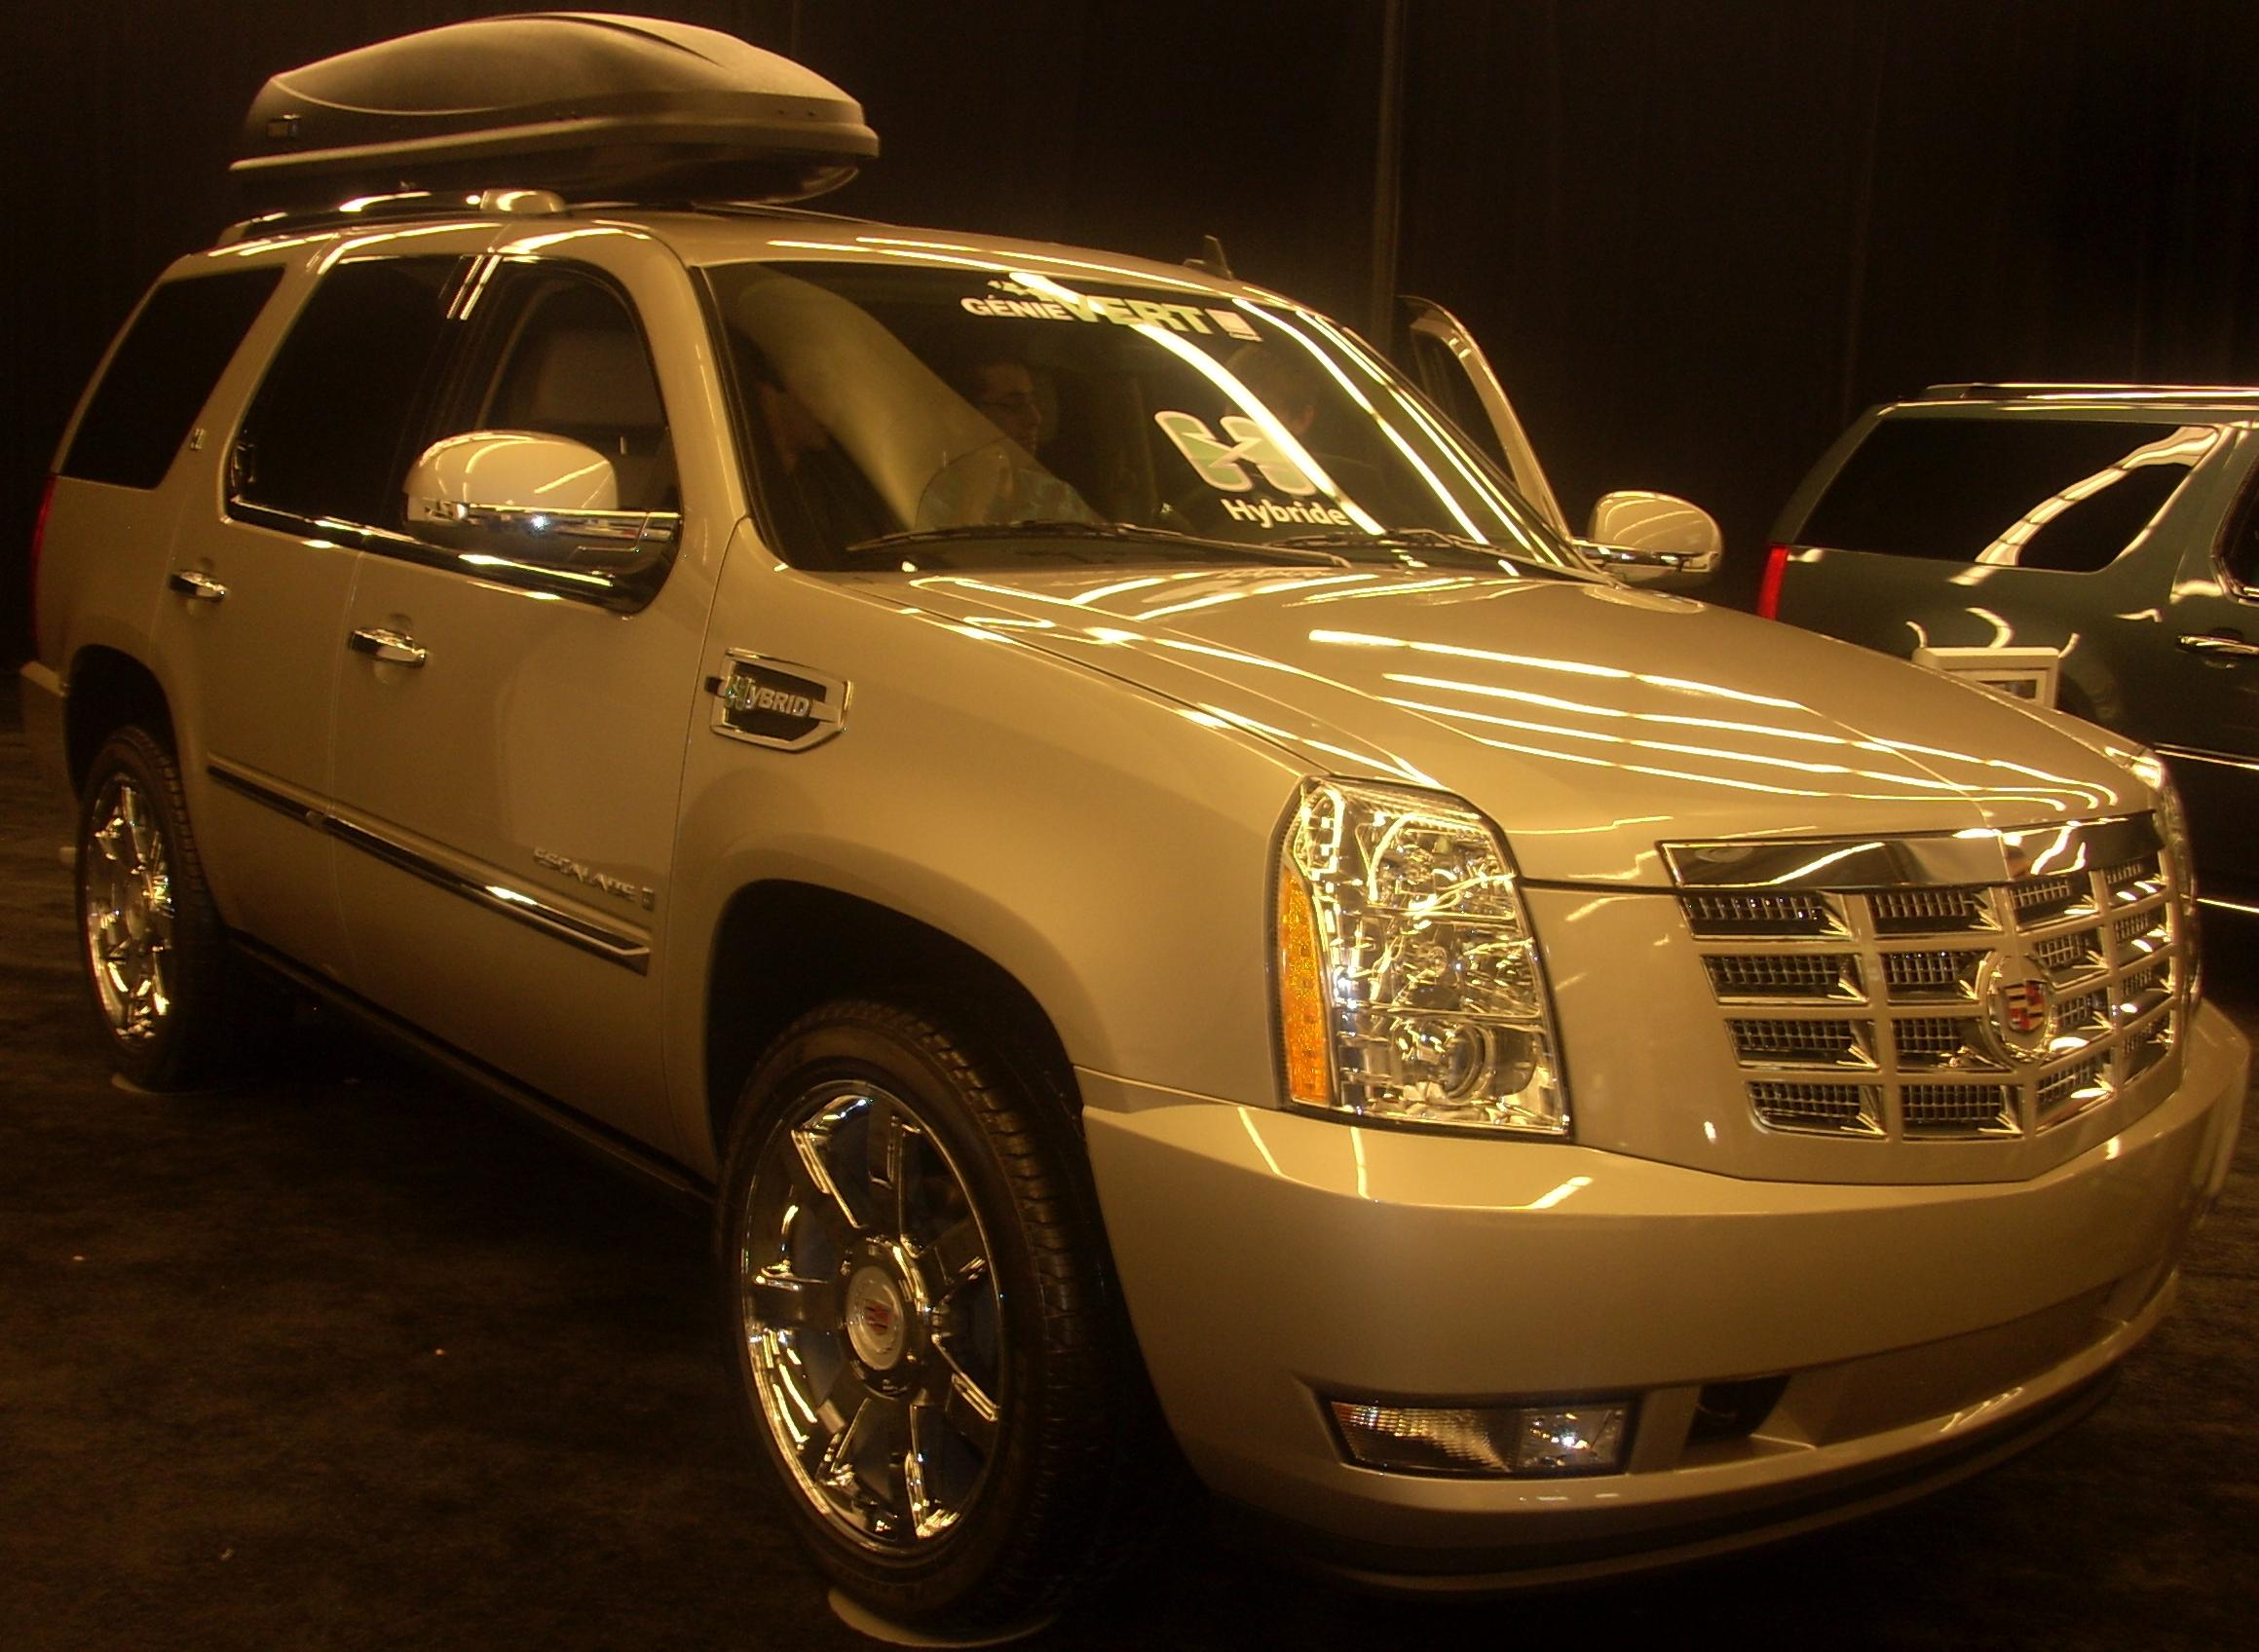 the cadillac escalade is a full size luxury suv engineered and